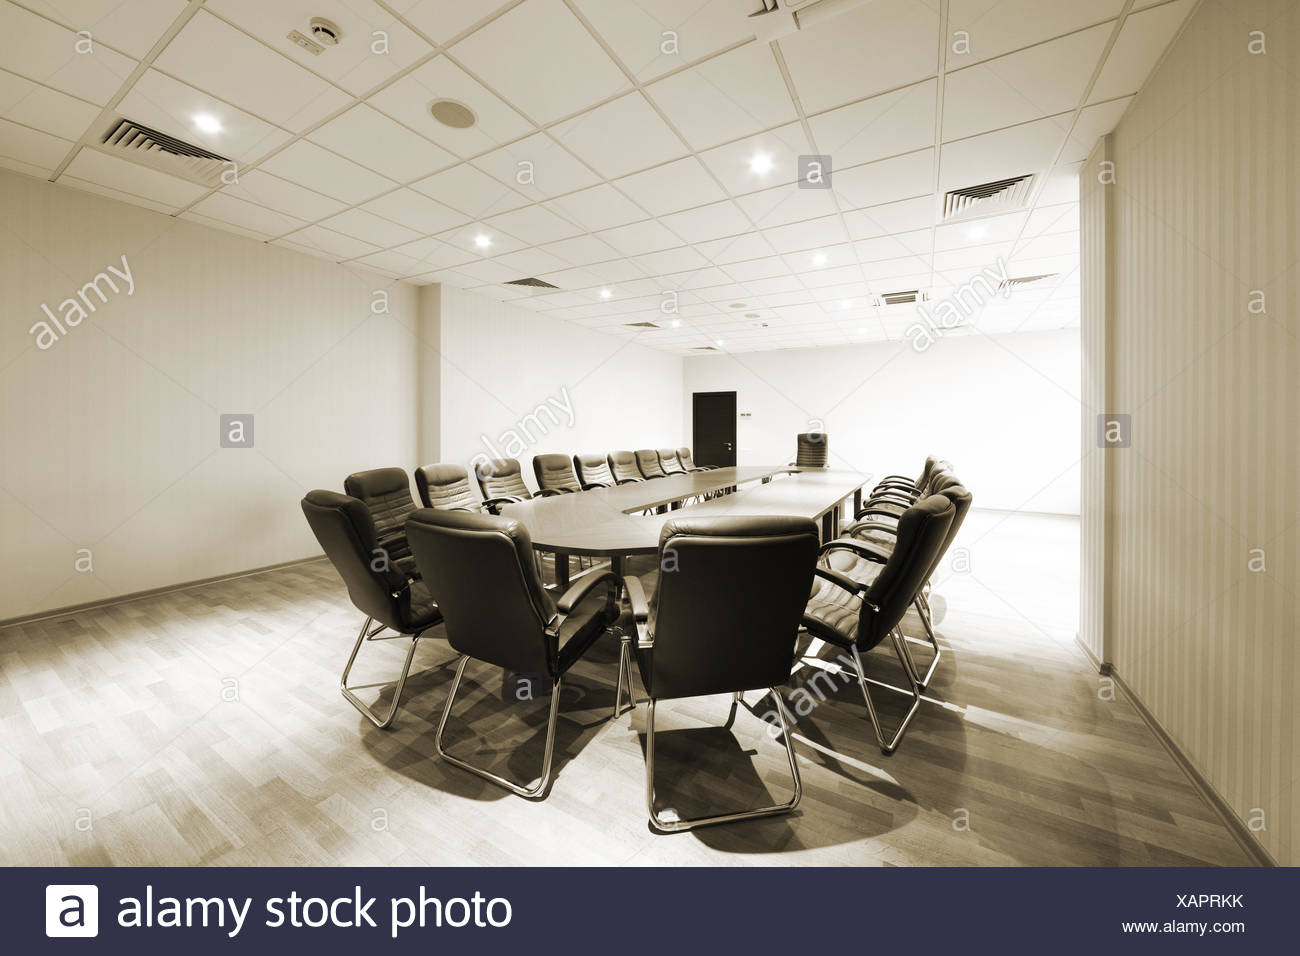 modern conference room - Stock Image